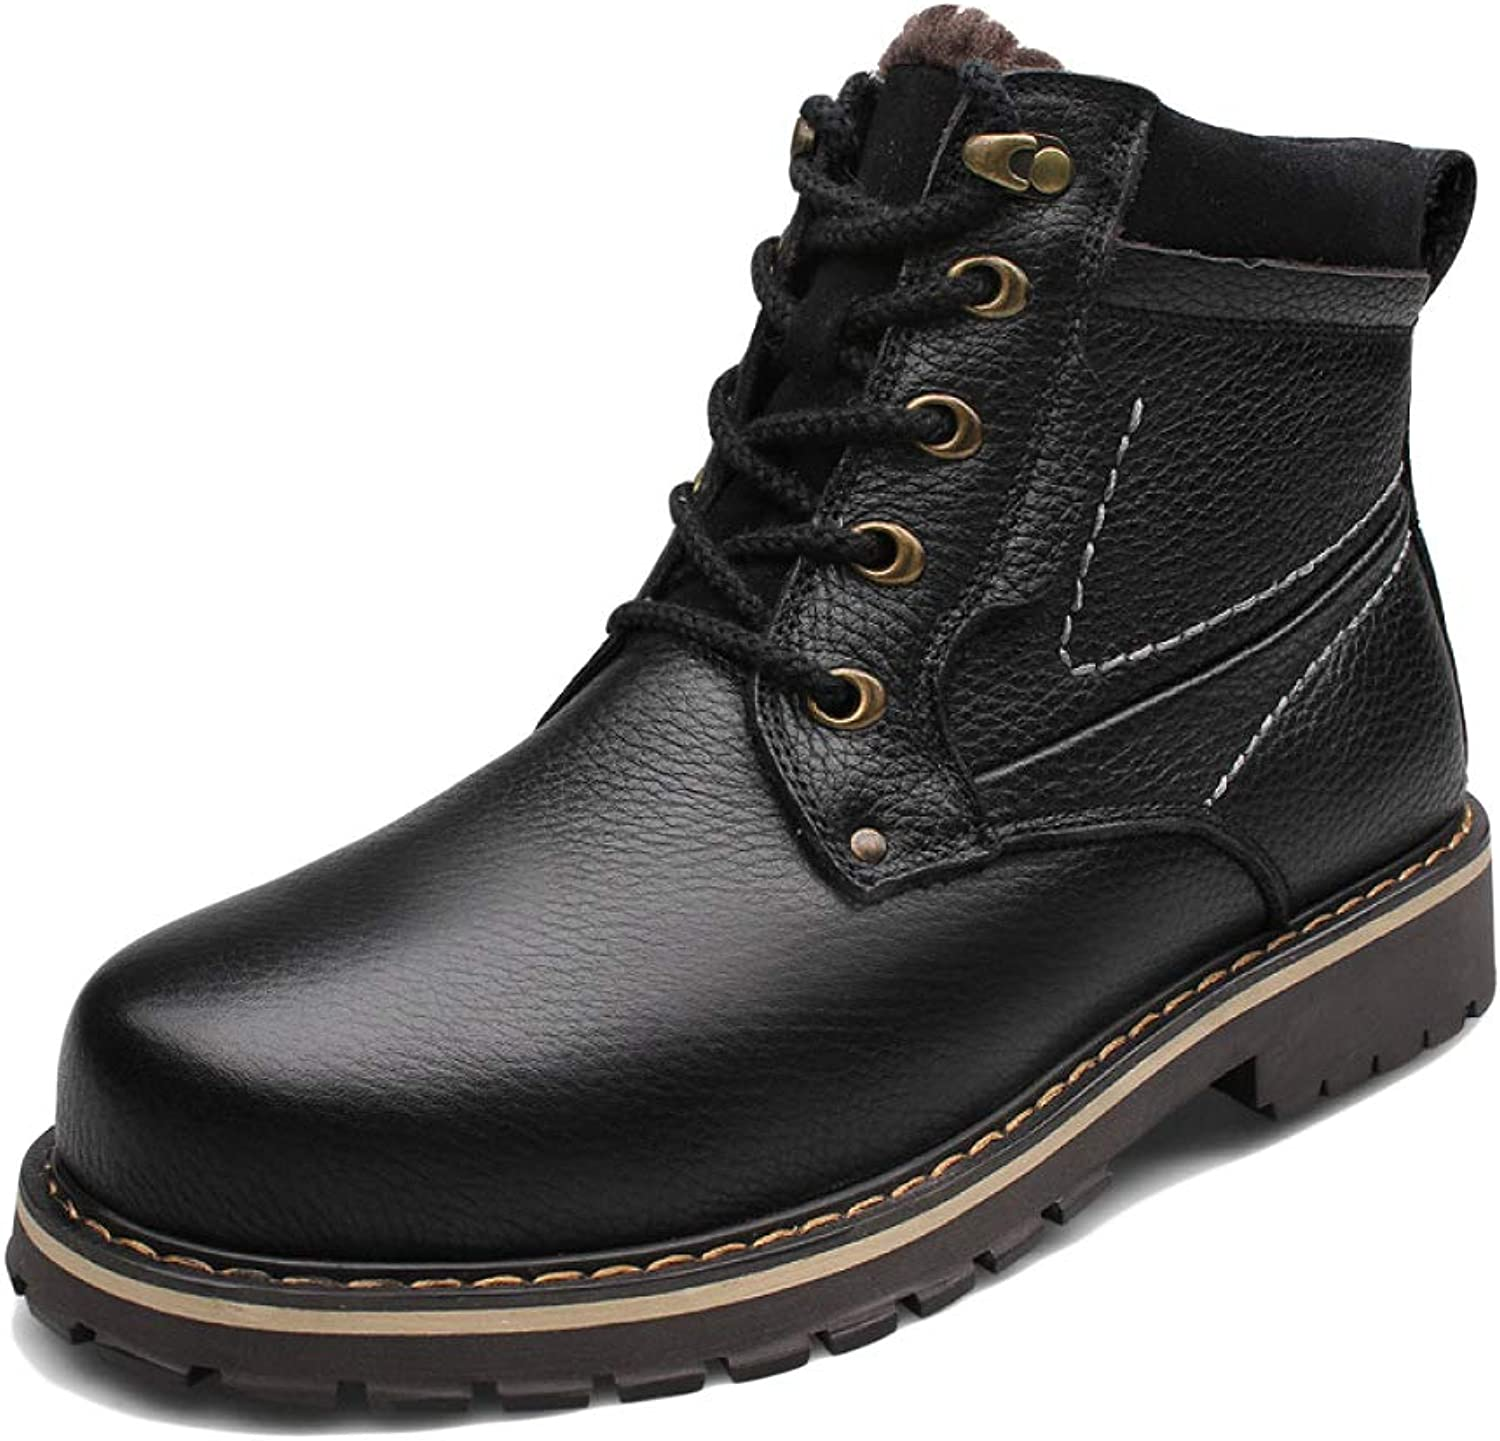 WWJDXZ Boots Men's Tooling shoes High Help Martin Boots Plus Velvet Thicken Desert Boots Non-Slip Wear Walking Boots Comfortable Motorcycle Boots